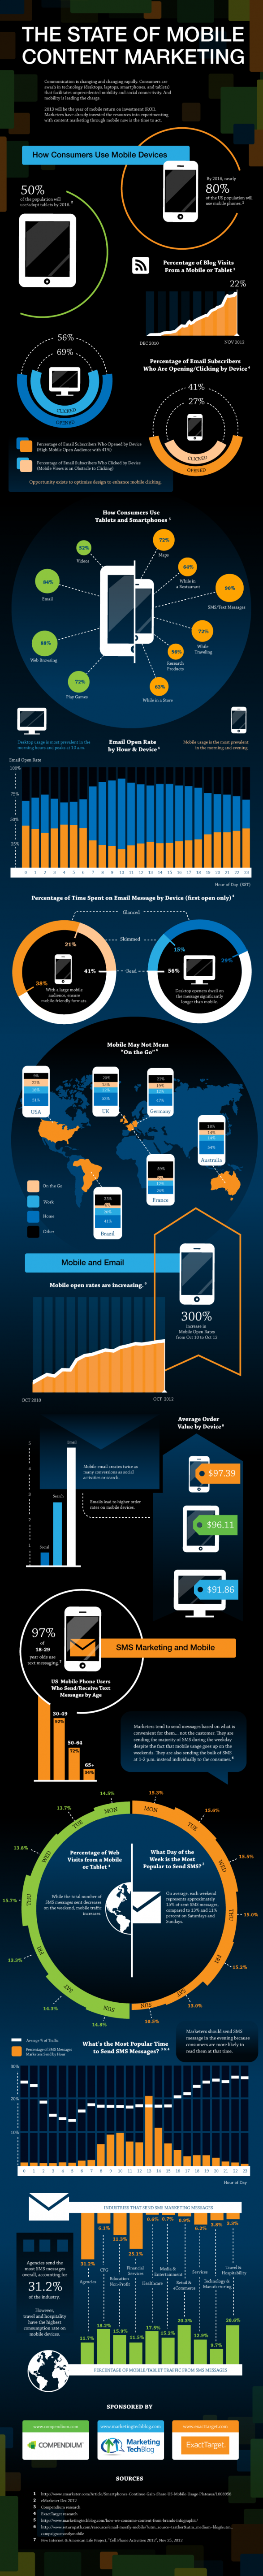 the state of mobile content marketing 5122c664befa3 w587 The State of Mobile Content Marketing